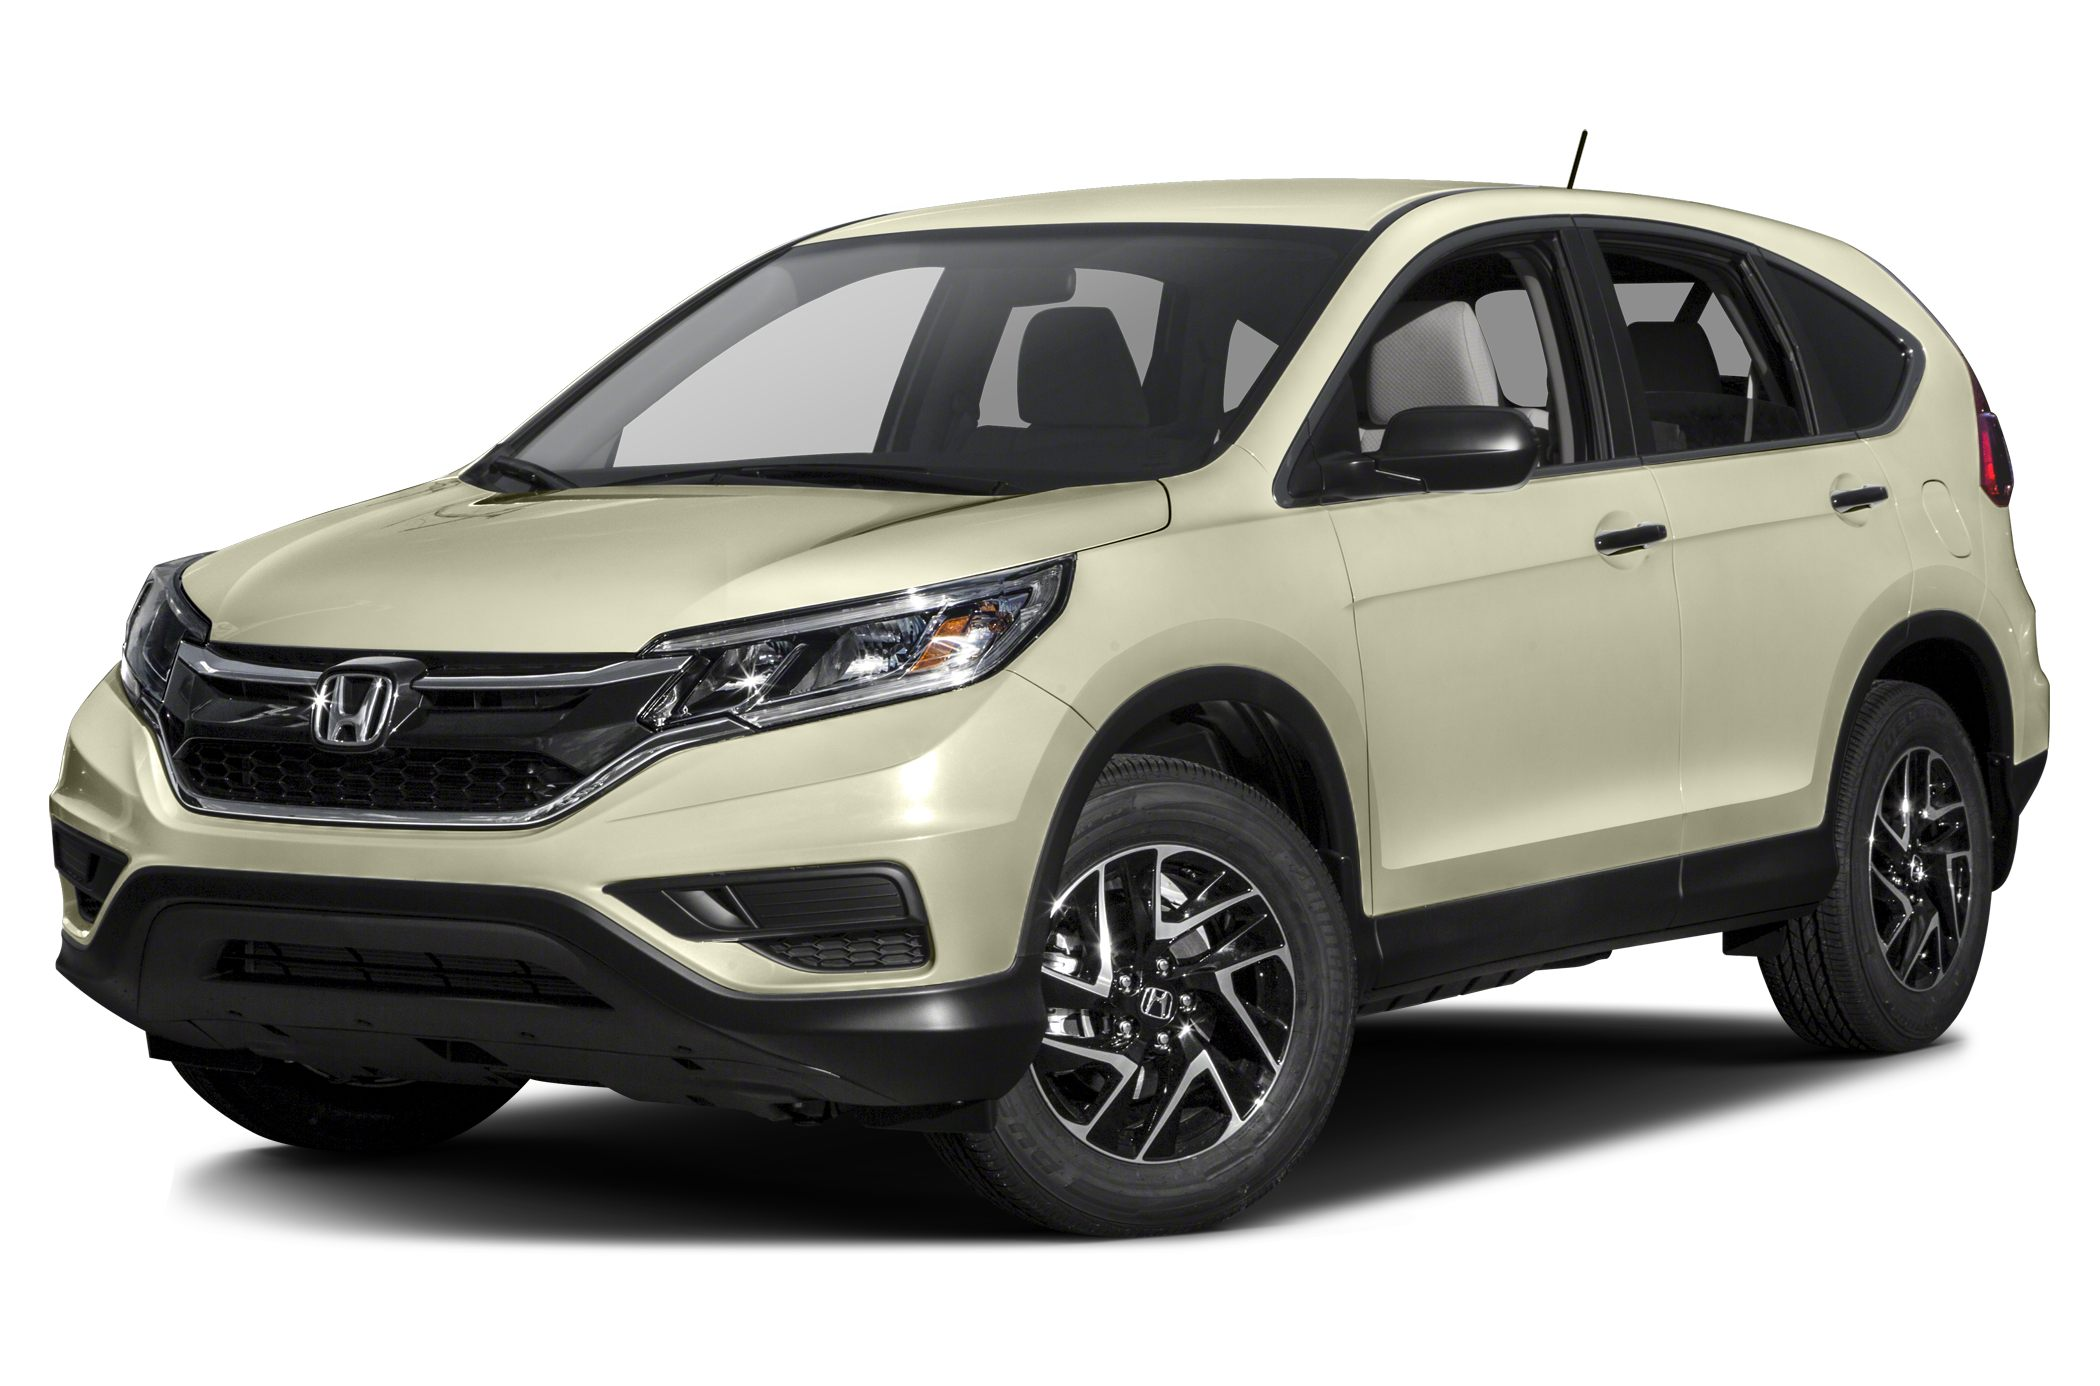 Honda Crv Gas Tank Size New Car Release Information